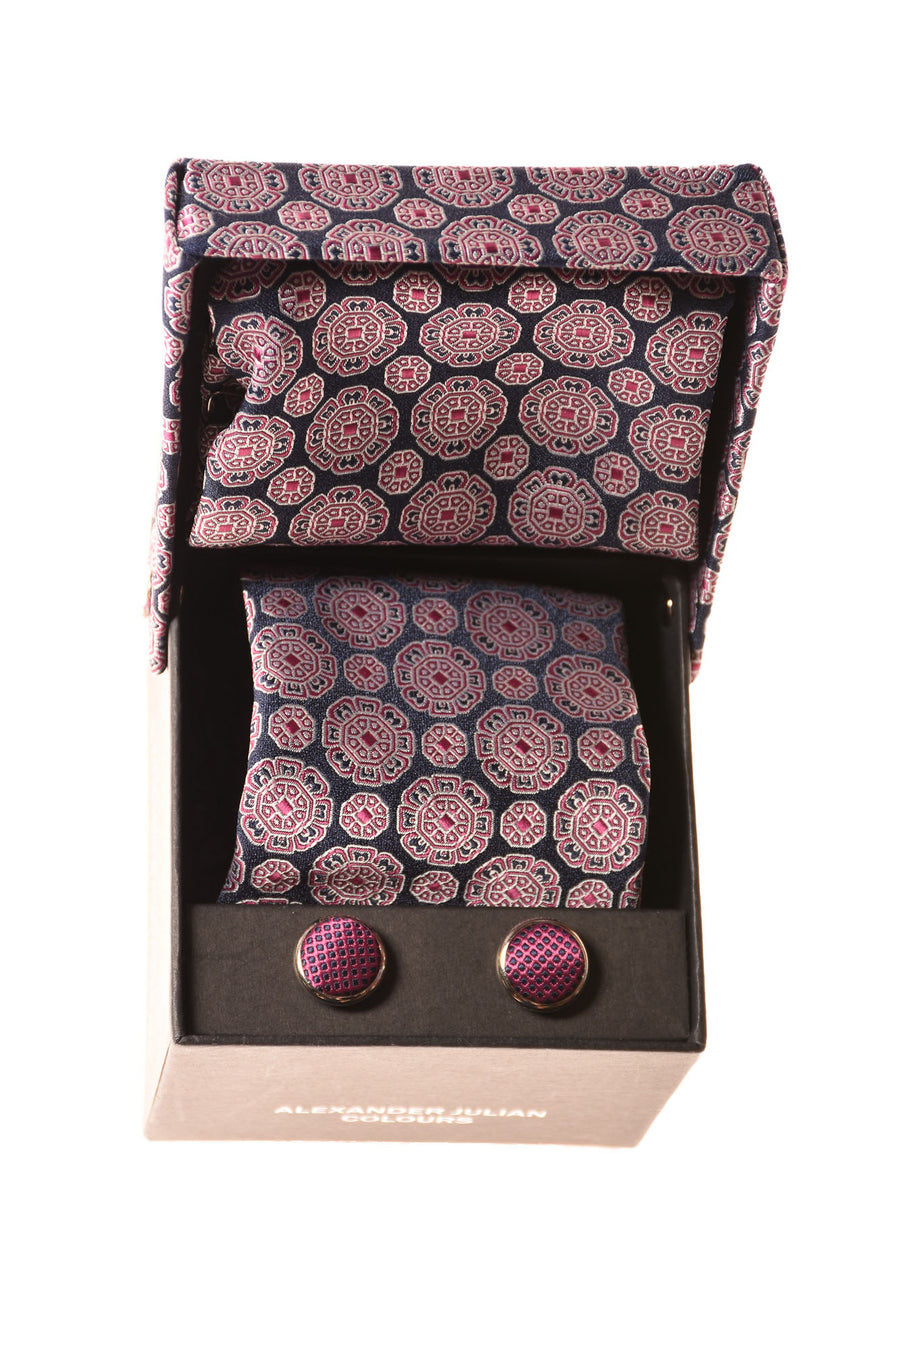 Men's Tie Set By Colours By Alexander Julian